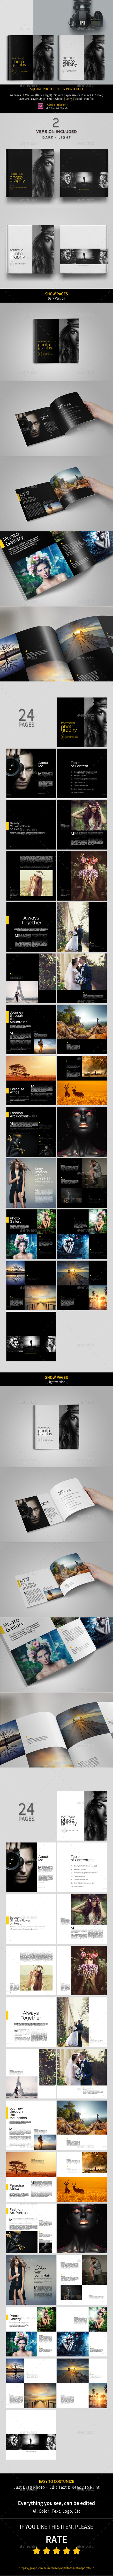 Square Photography Portfolio - Portfolio Brochures